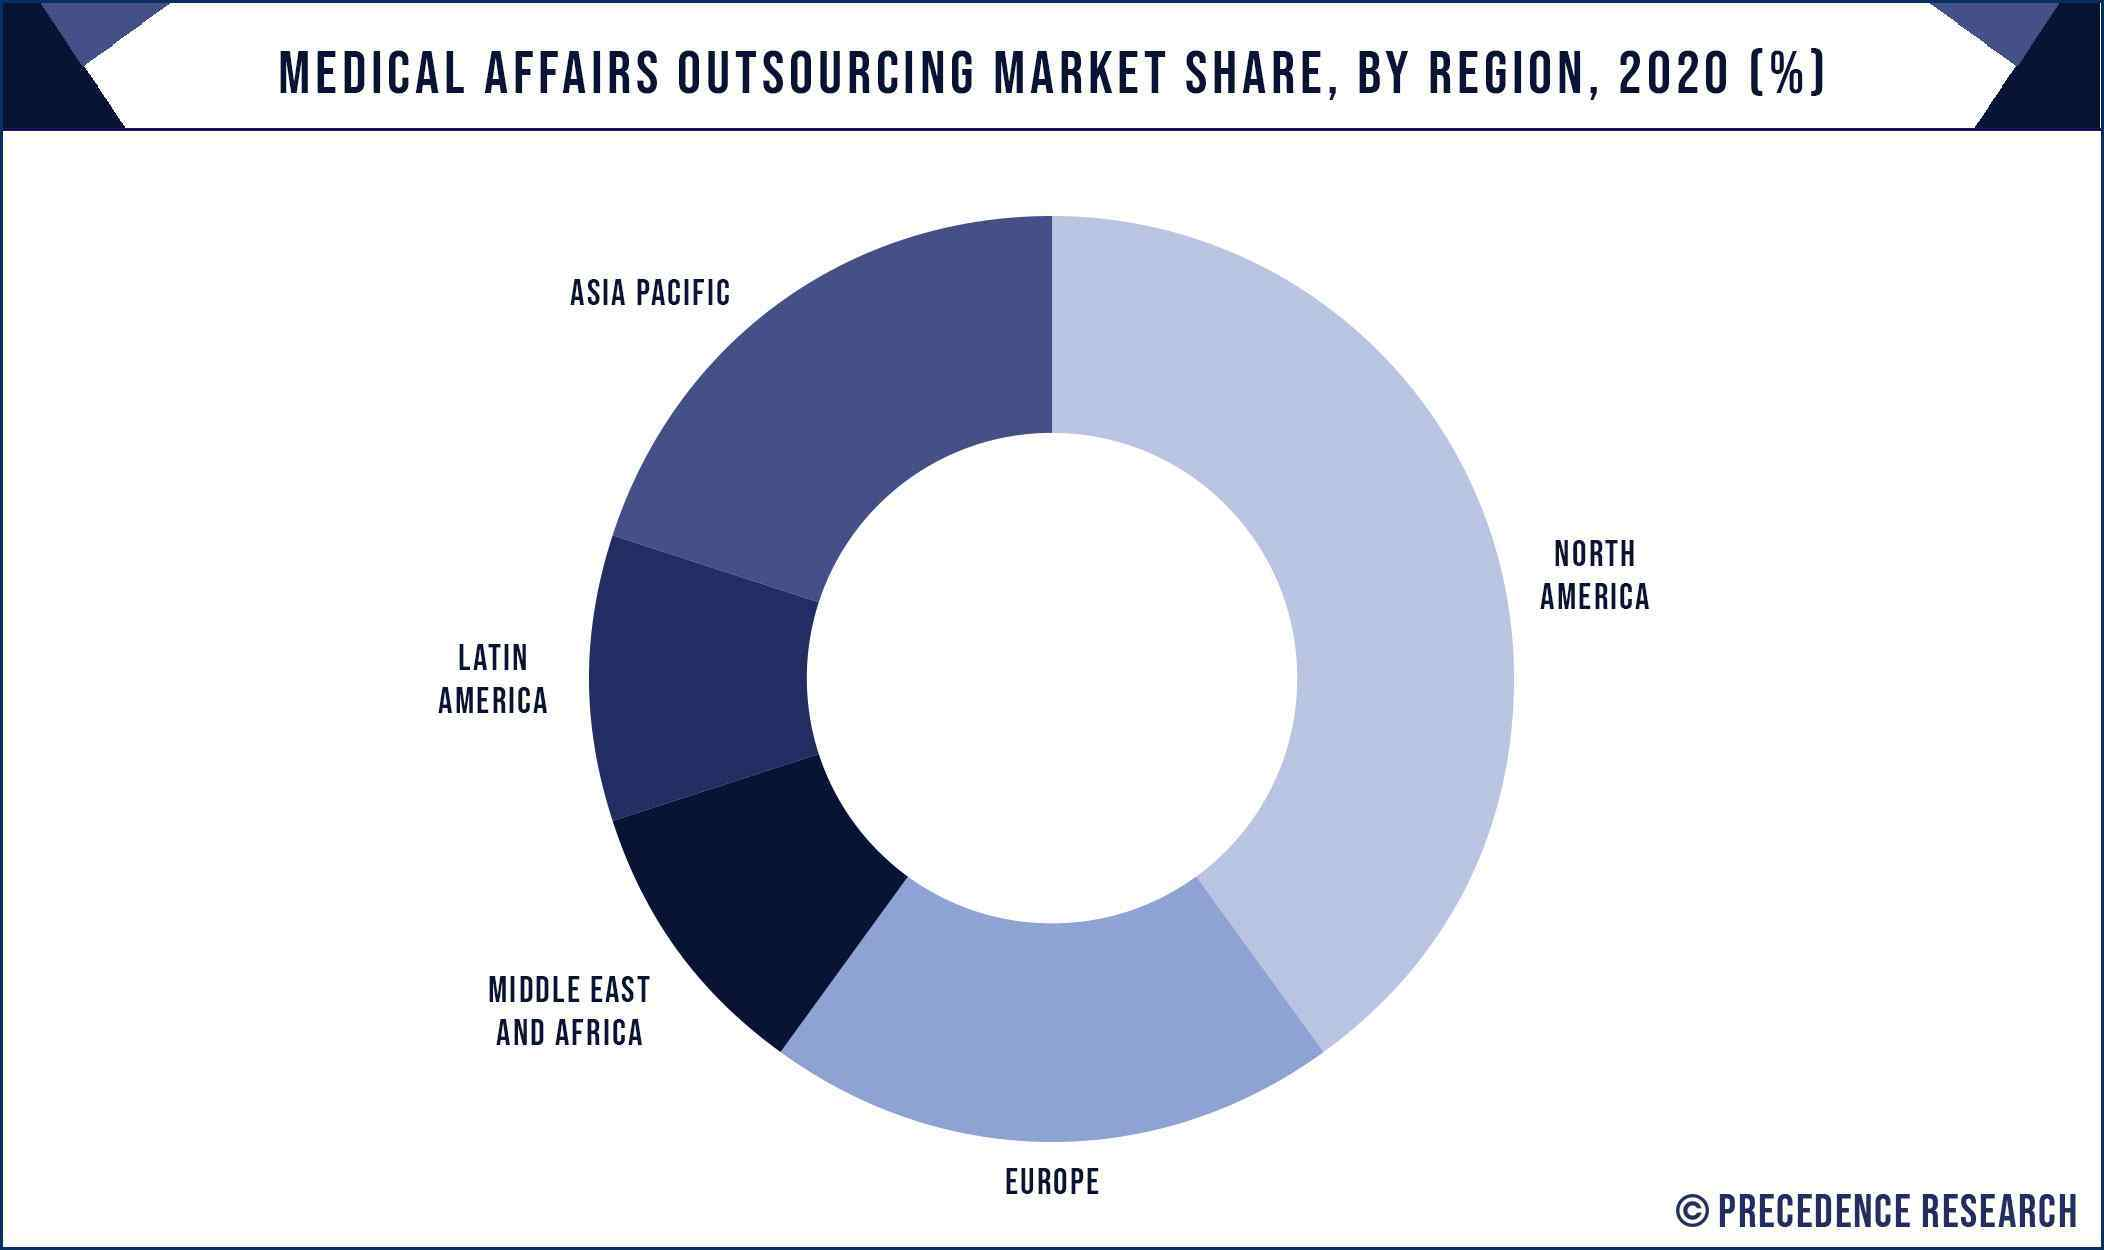 Medical Affairs Outsourcing Market Share, By Region, 2020 (%)